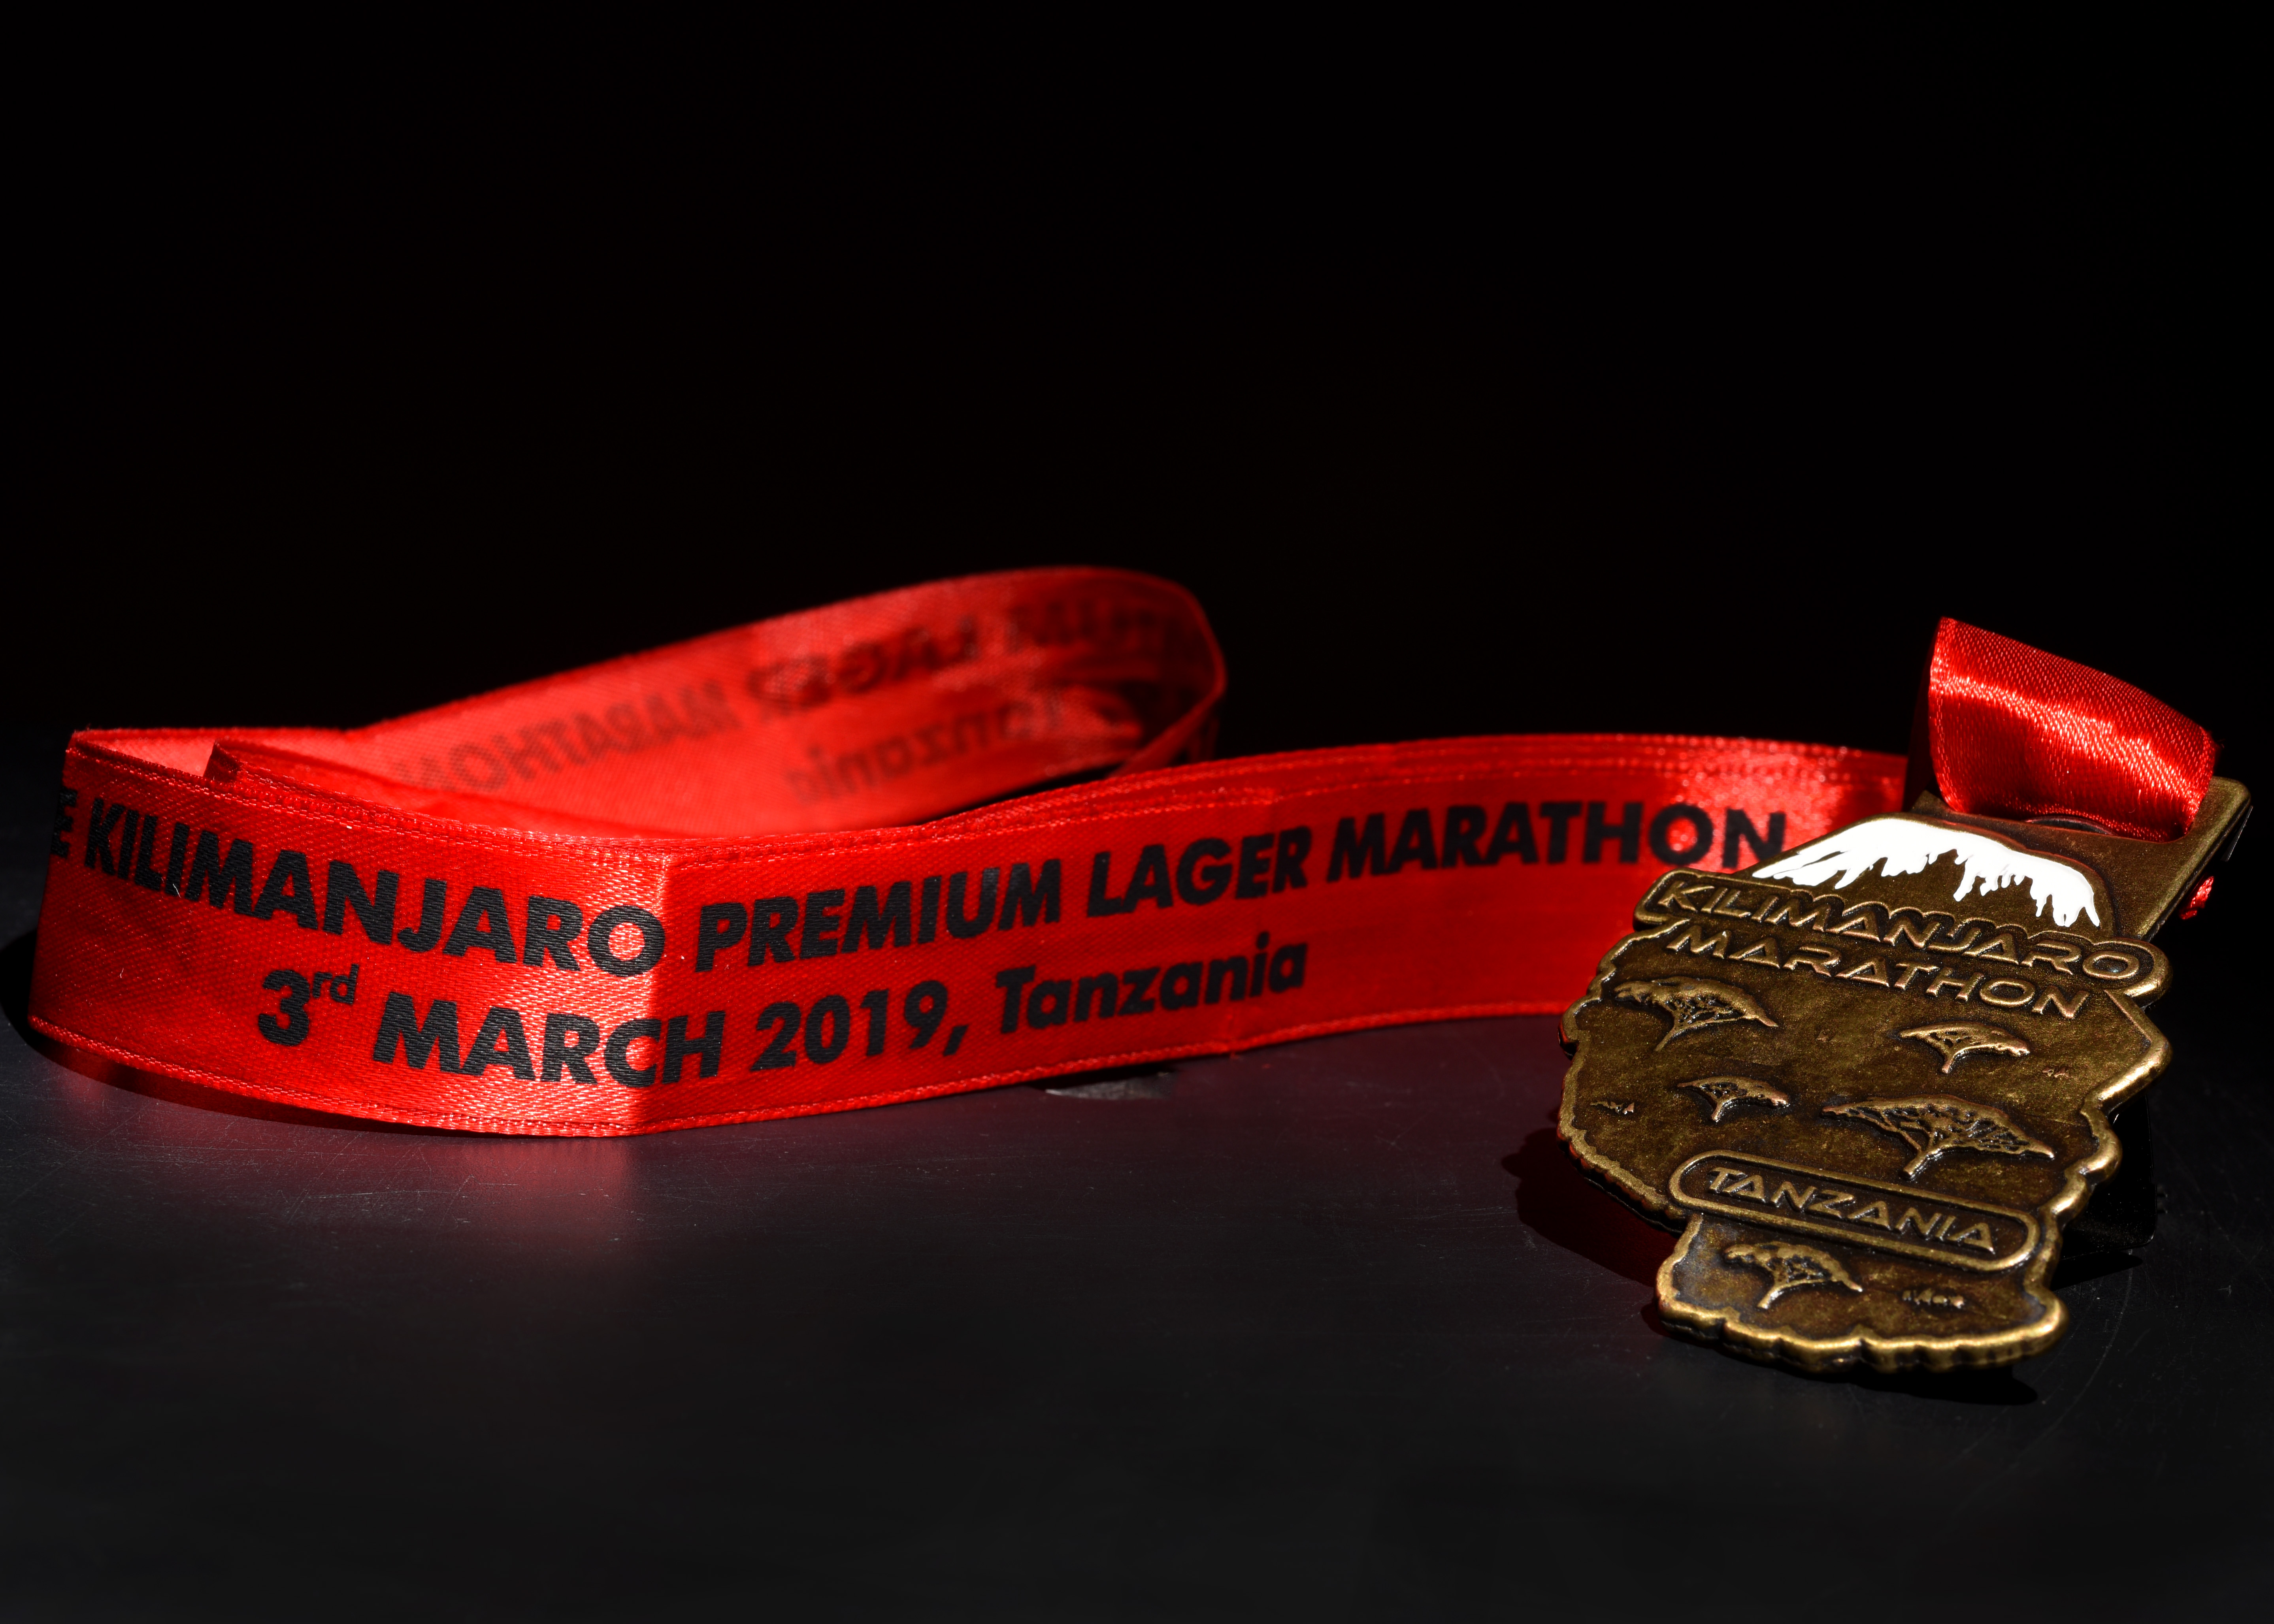 A Kilimanjaro Marathon medal belonging to U.S. Army Capt. David Picchi, contingency contracting officer assigned to Combined Joint Task Force-Horn of Africa, is displayed at Camp Lemonnier, Djibouti, March 21, 2019. Picchi, a member of the Illinois Army National Guard Running Team, deployed from Camp Lincoln, Springfield, Illinois, earned the medal when he completed the 42.2-kilometer marathon in 5 hours, 15 minutes in Moshi, Tanzania, March 3, 2019. (U.S. Air Force photo by Staff Sgt. Franklin R. Ramos)